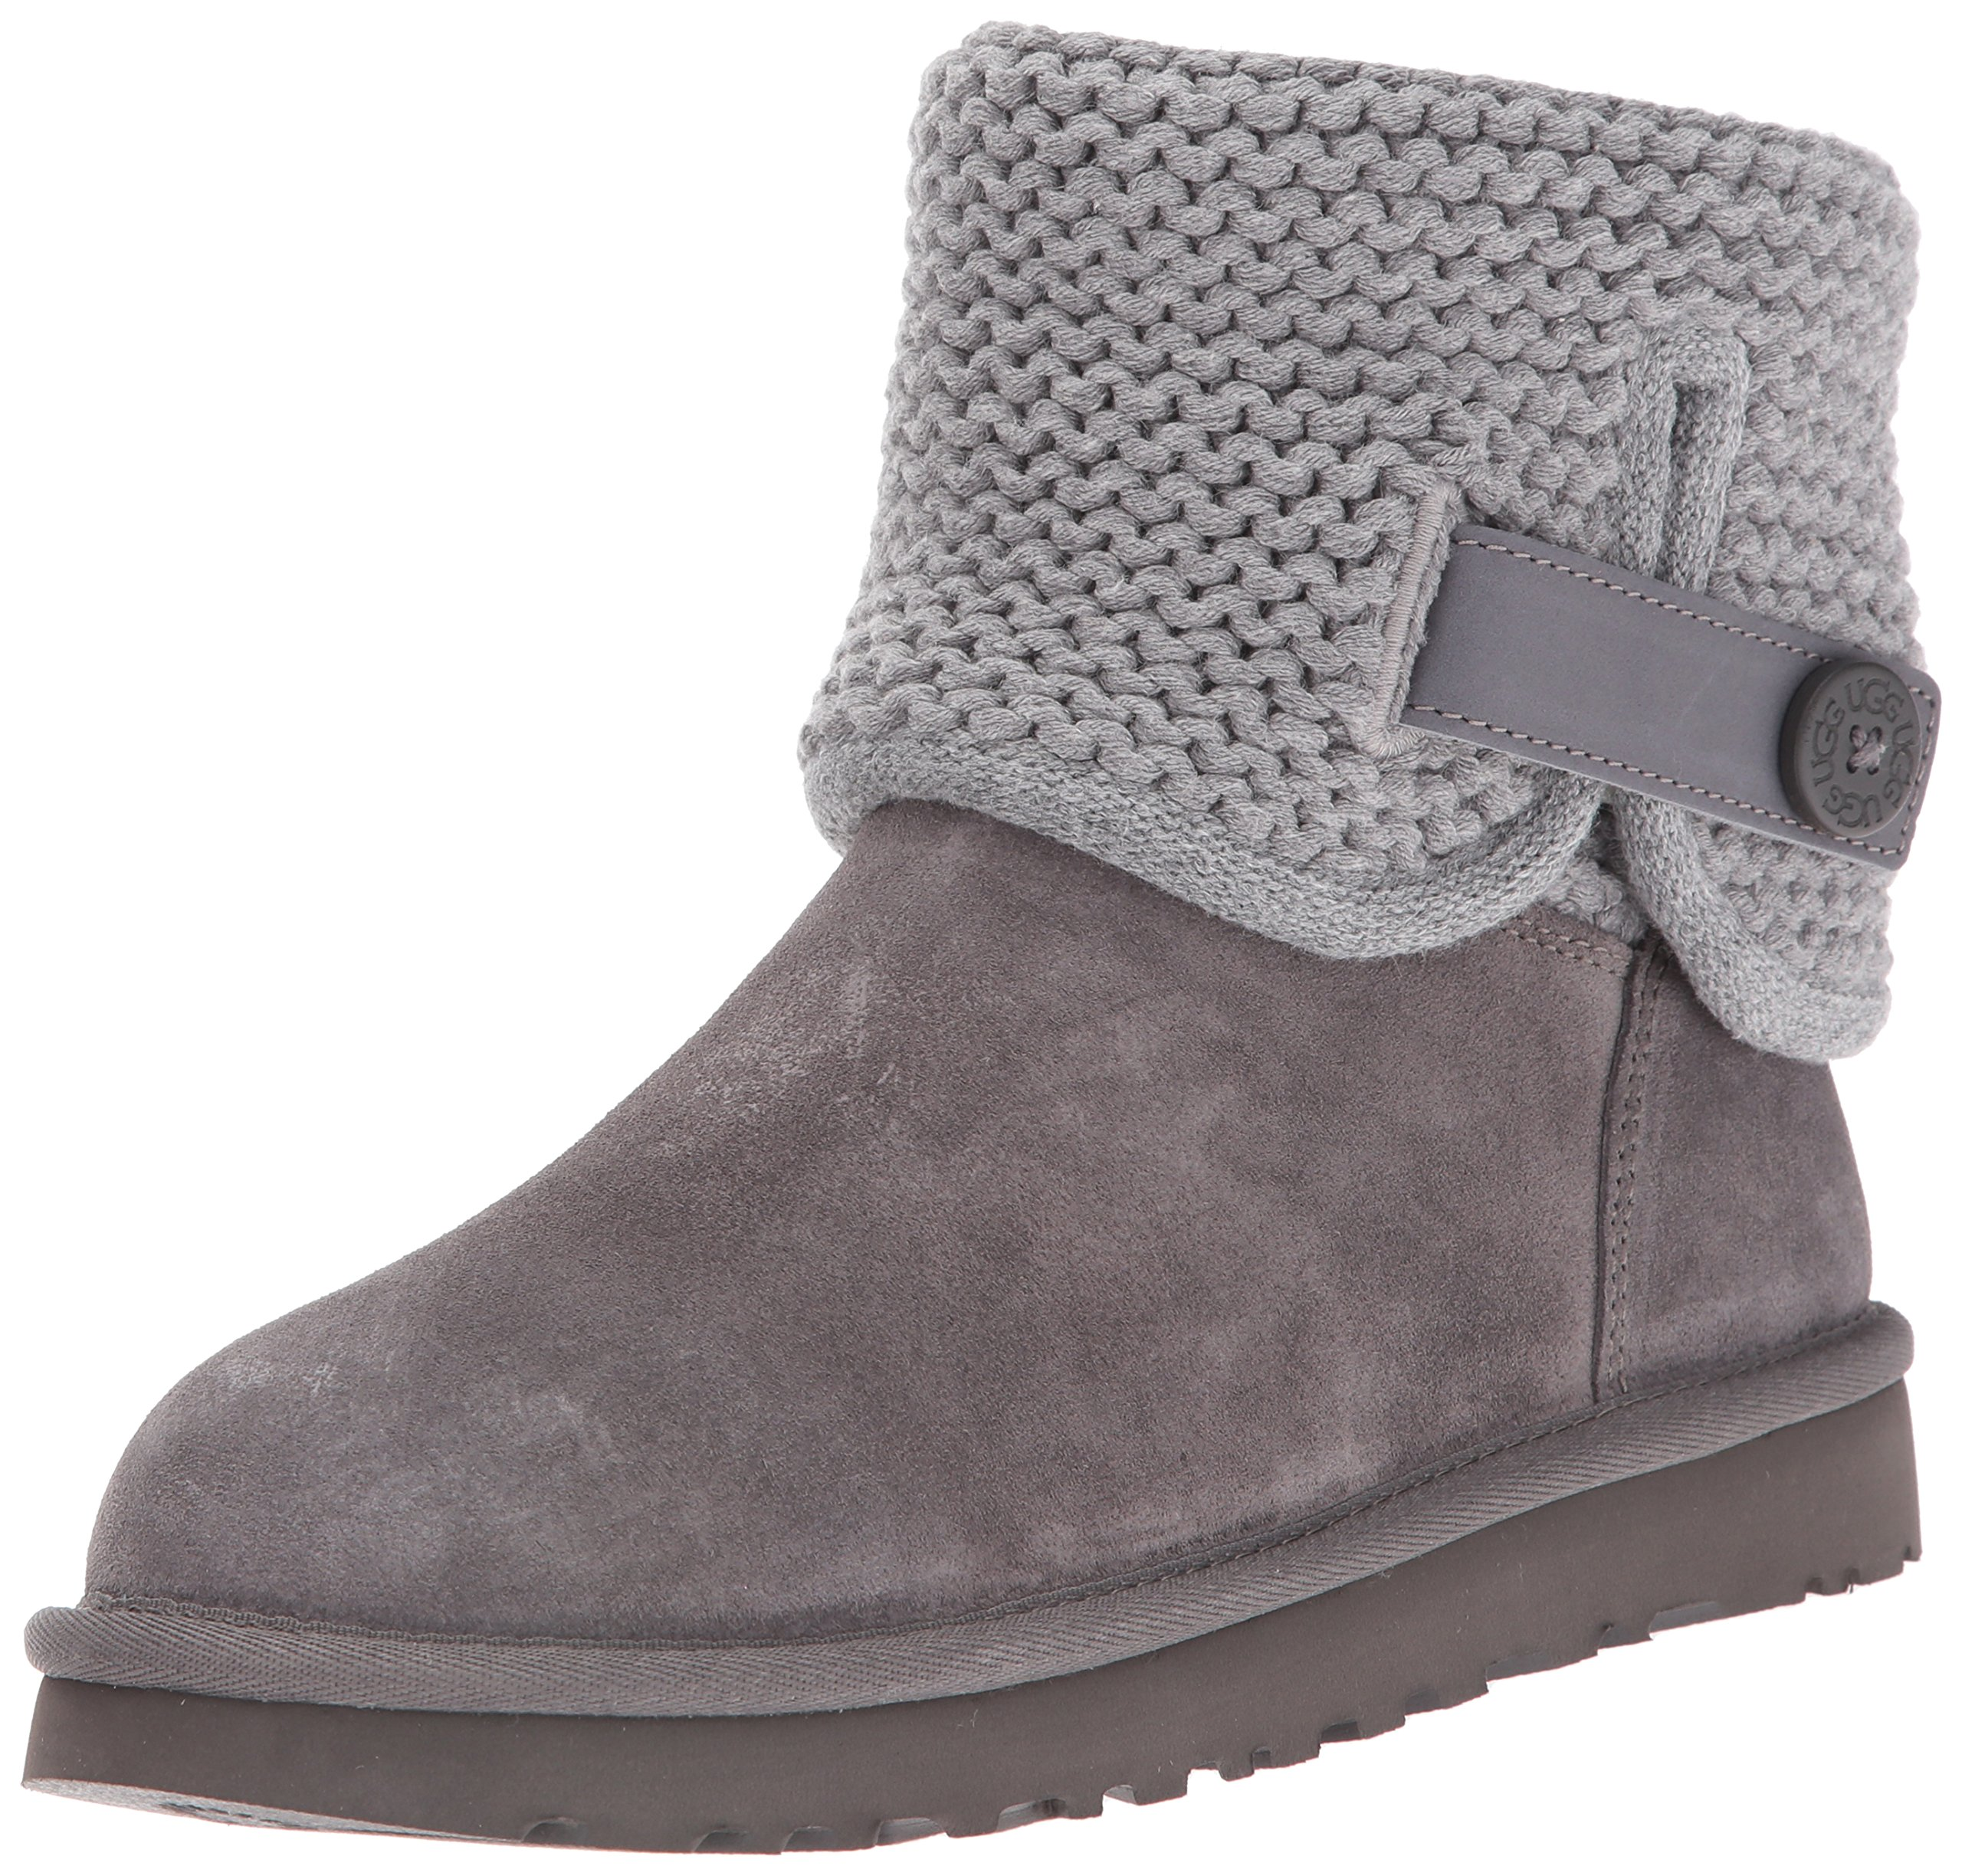 UGG Women's Shaina Slip On Slipper, Grey, 9 M US